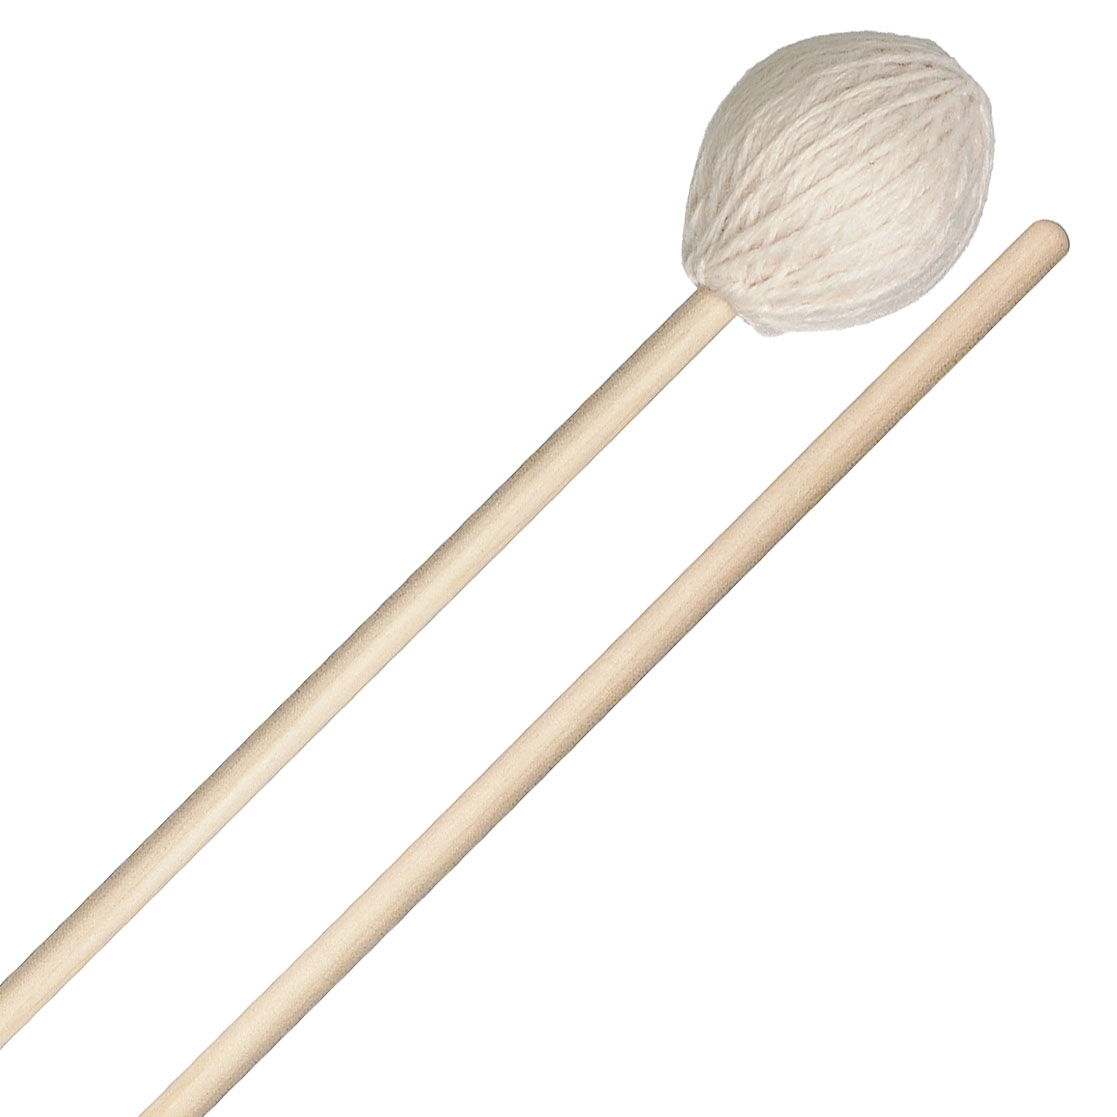 Vic Firth Gifford Howarth Signature Very Soft Yarn Marimba Mallets